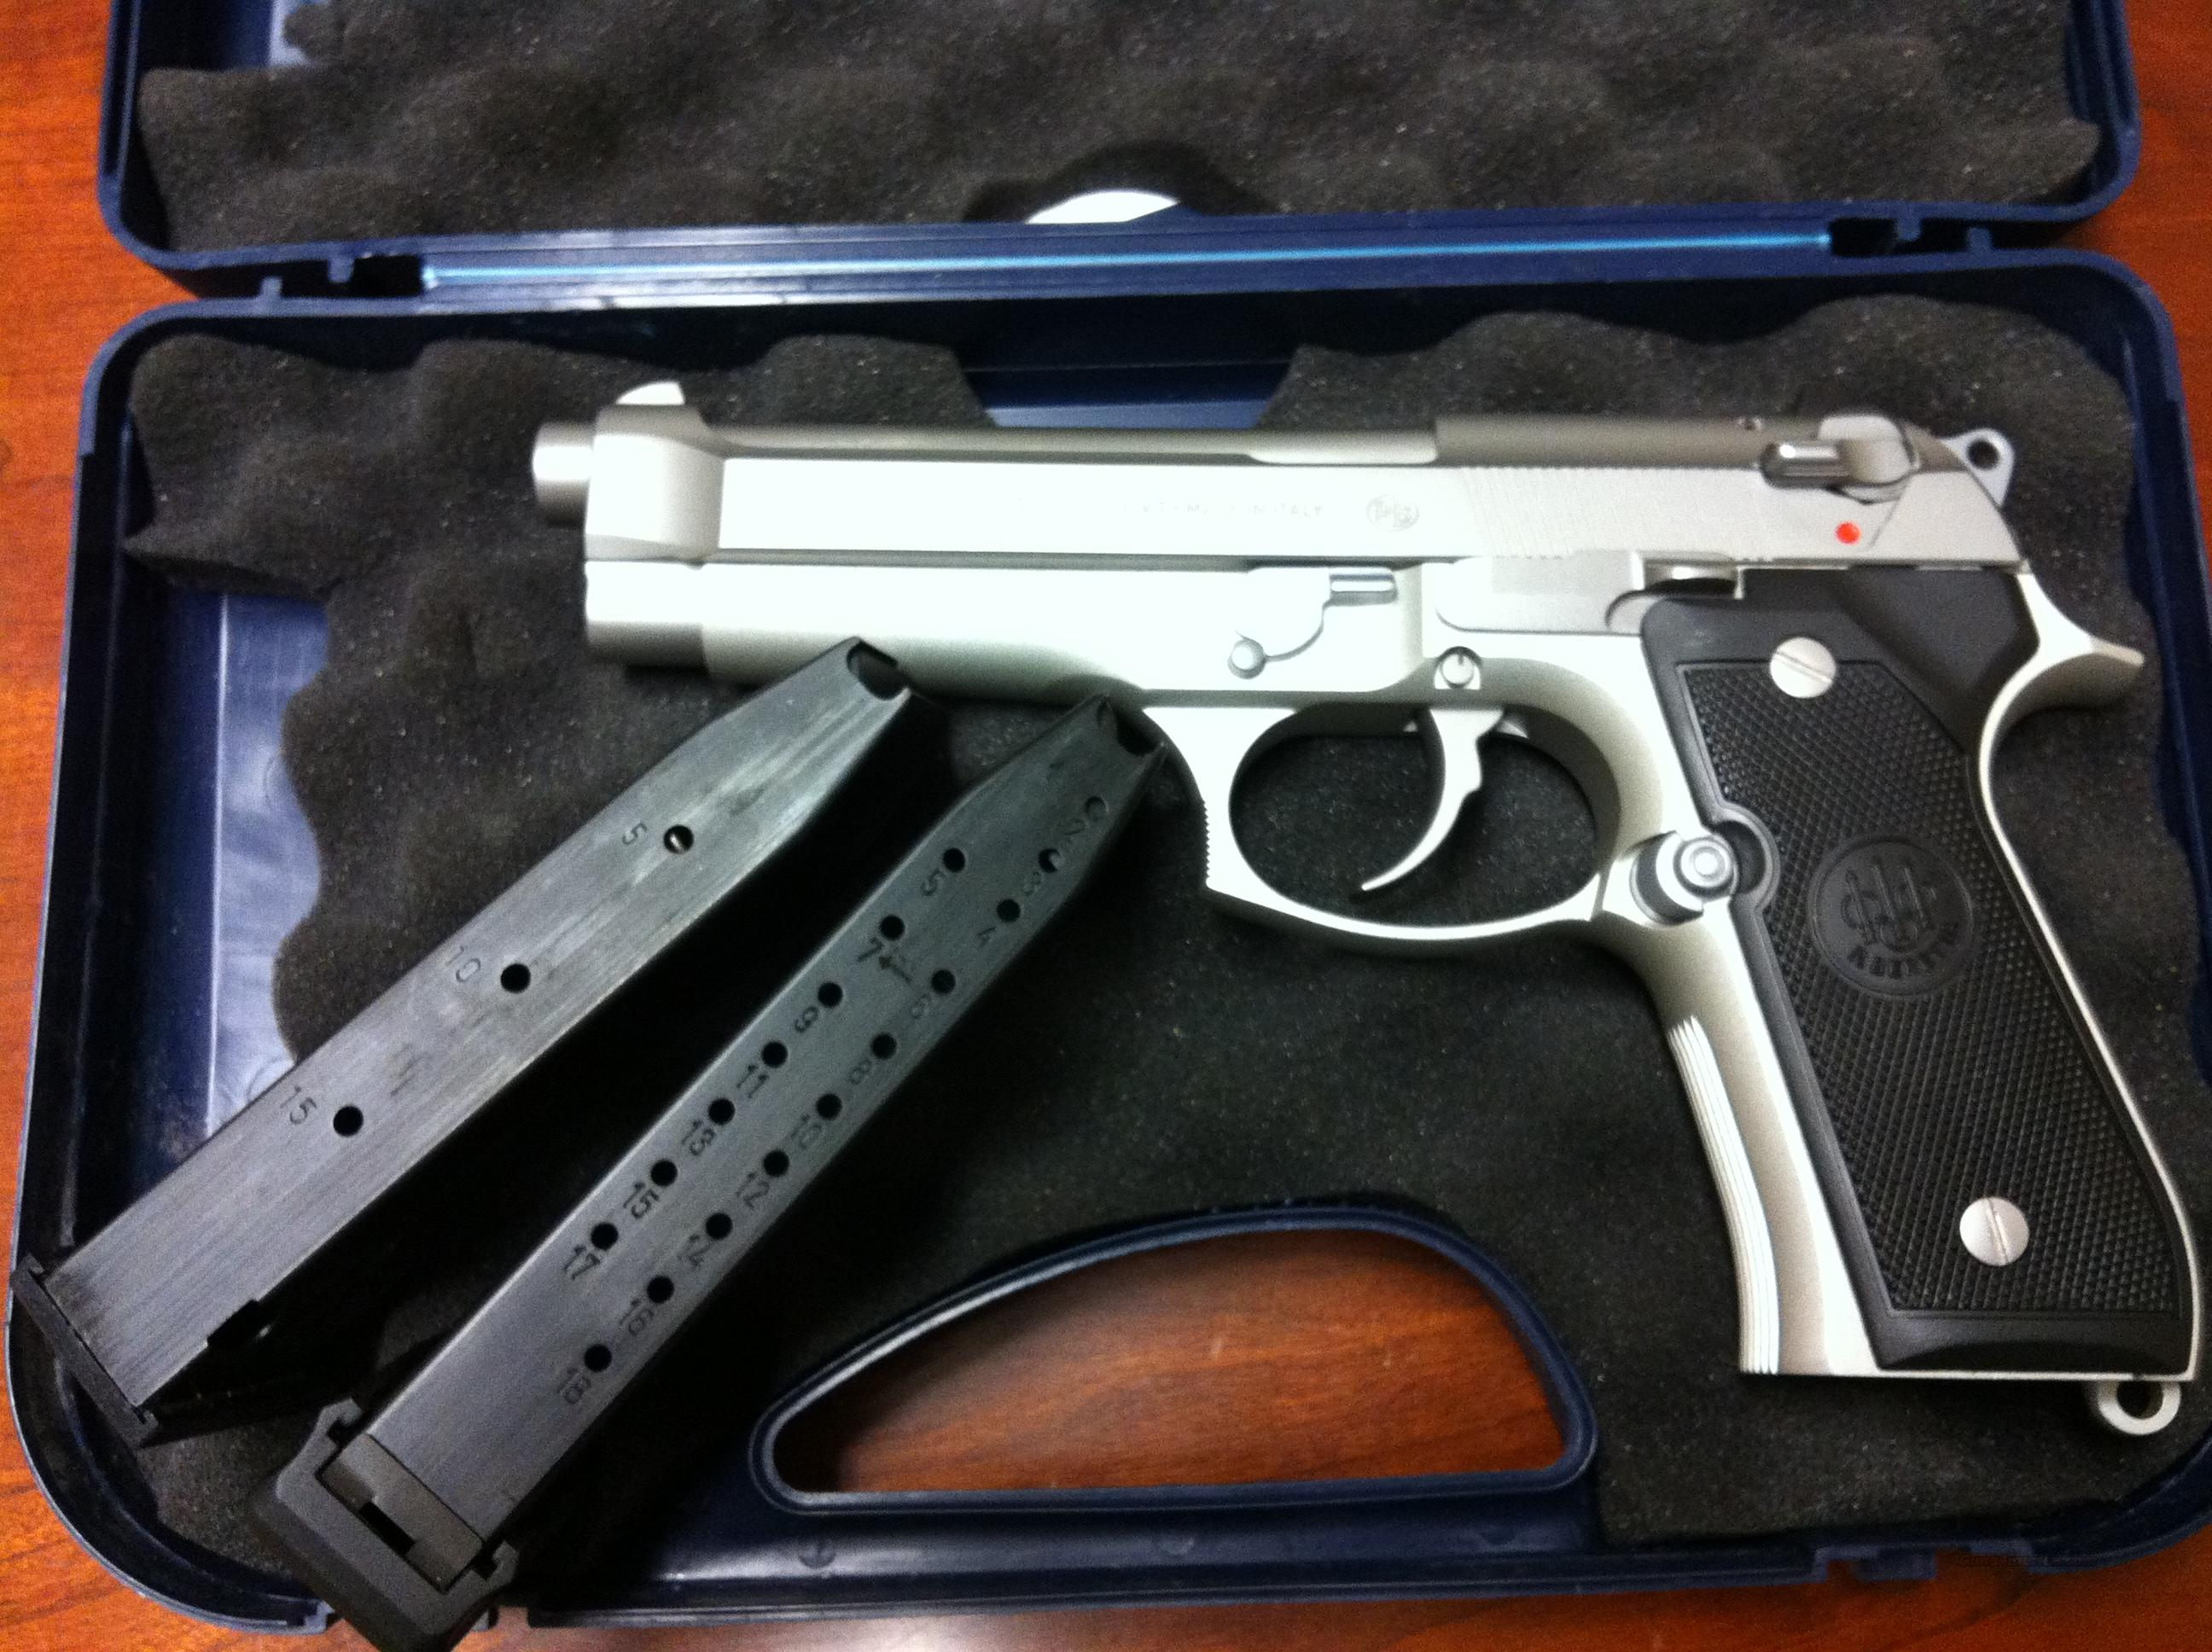 BERETTA 92FS INOX ITALIAN MADE. TWO 15 ROUND FACTORY MAGS & ONE 20 ROUND MEC-GAR MAG  Guns > Pistols > Beretta Pistols > Model 92 Series